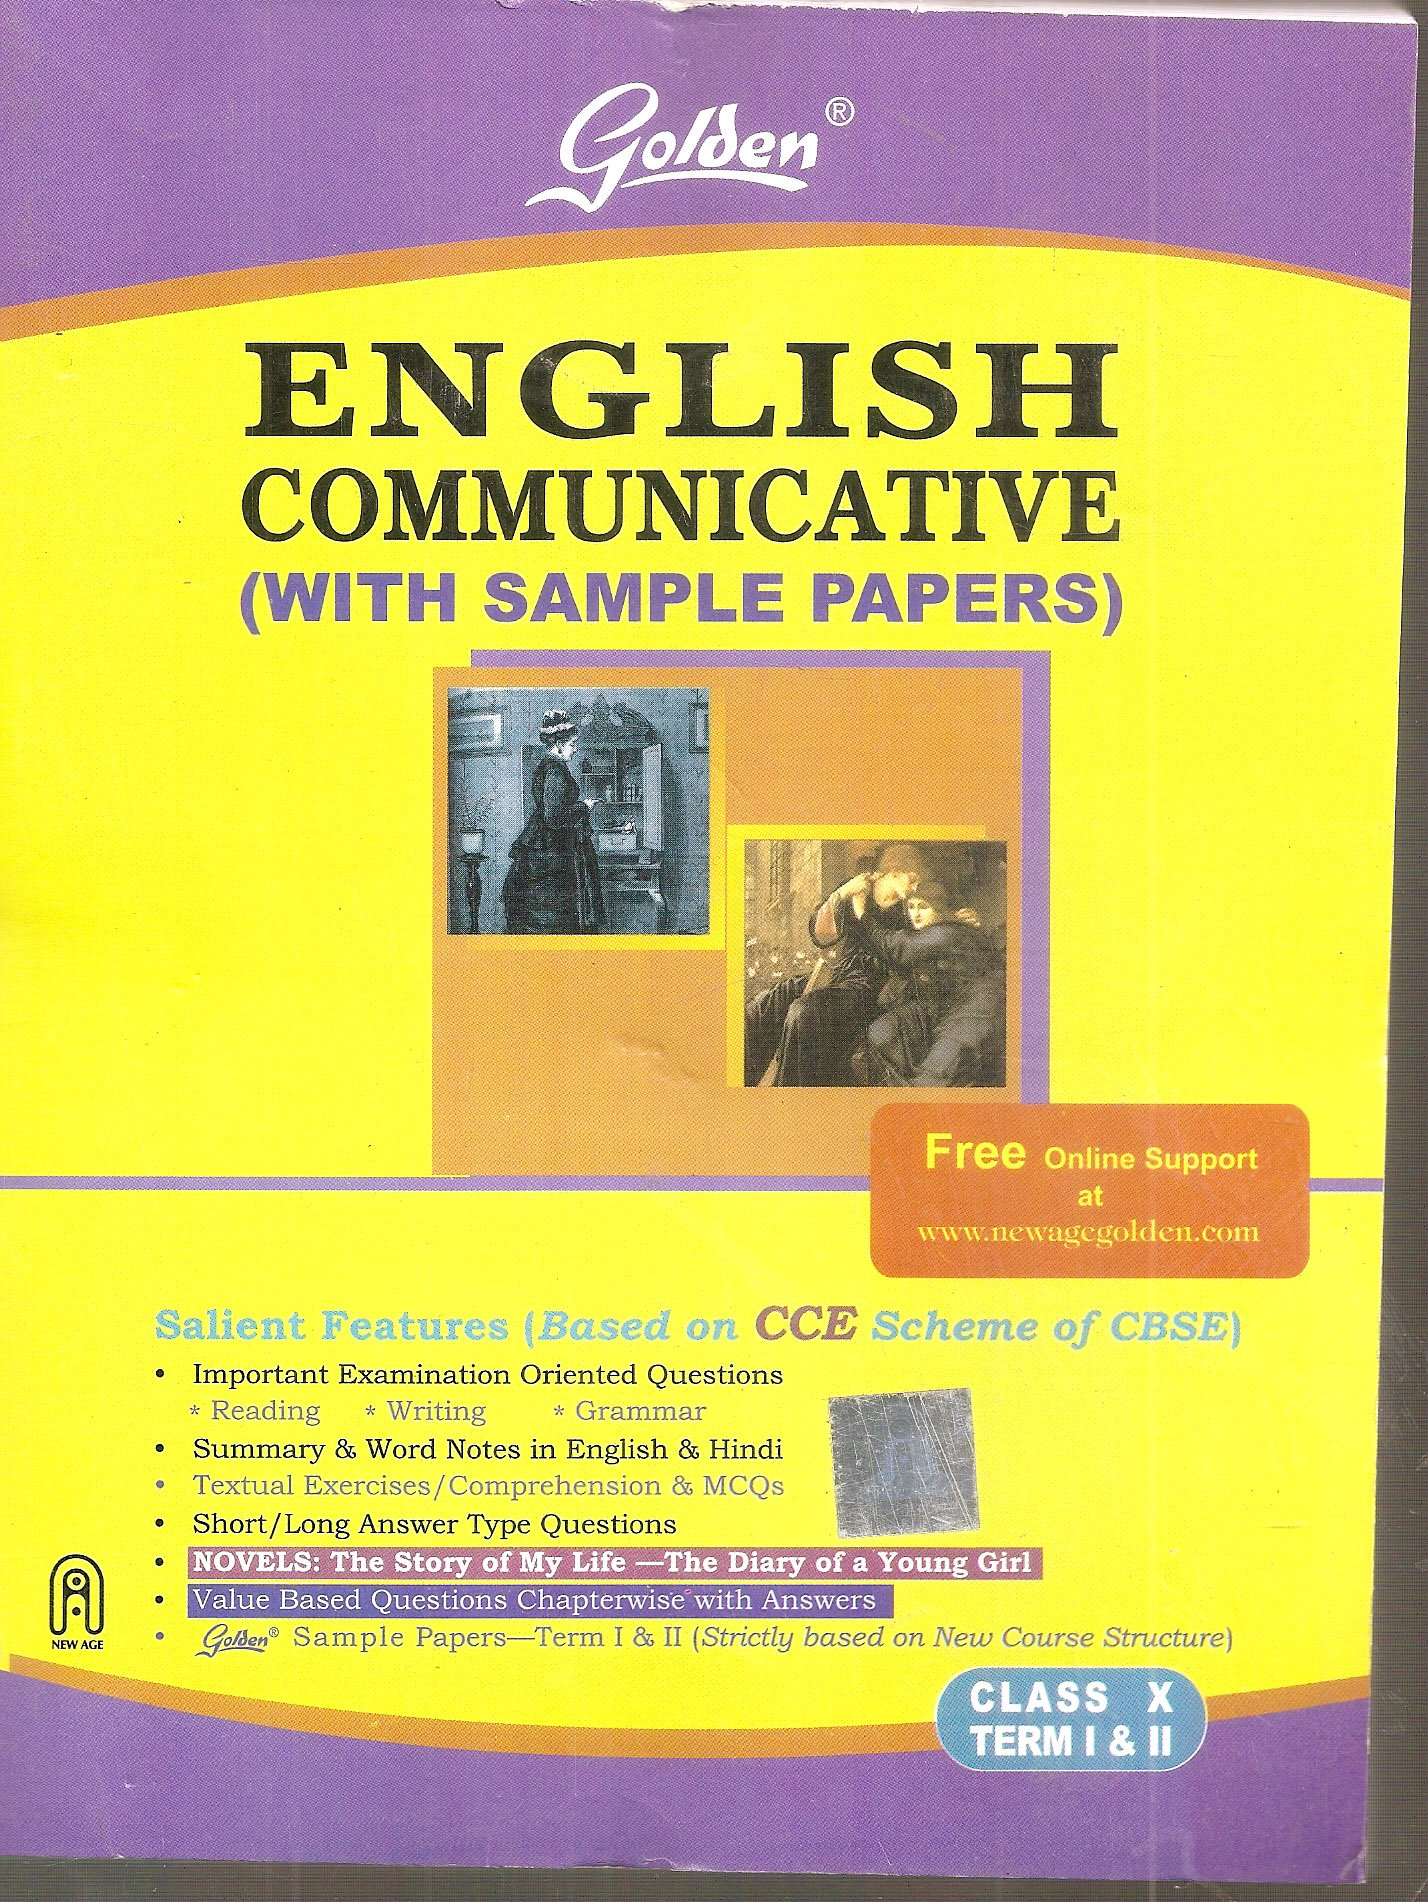 english essay of class 10 It comprises of questions or the sample paper of english for class 10th based on icse pattern composition topics and essay writing topics it comprises of questions or the sample paper of english for class 10th based on icse pattern composition topics and essay writing topics.